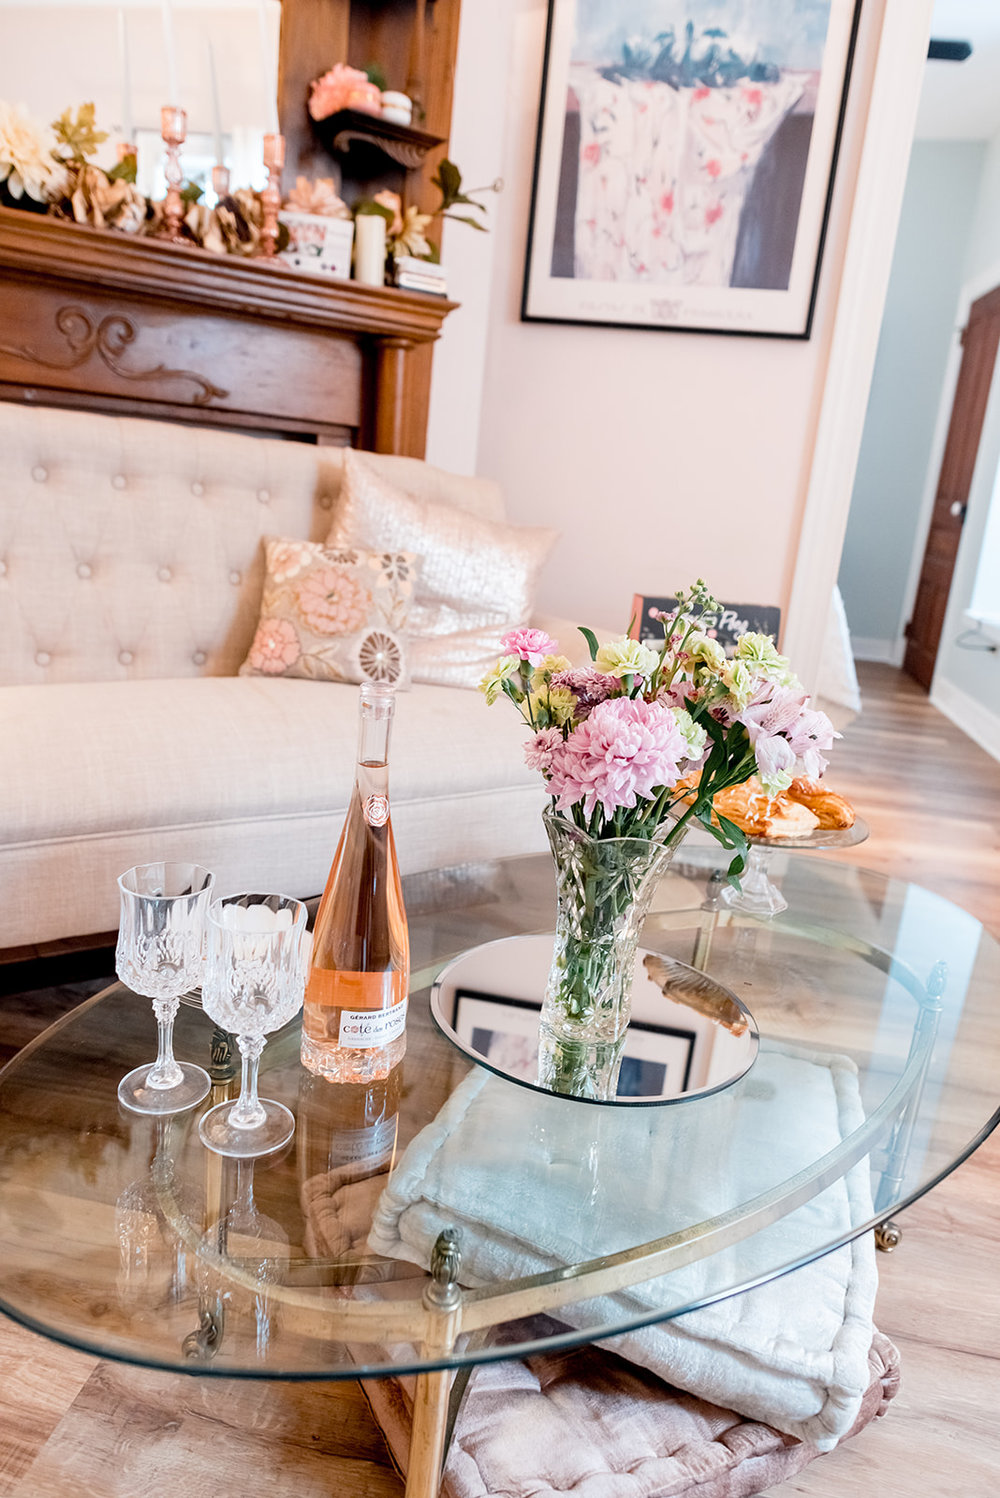 HOSPITALITY - We love North Carolina and have chosen spaces with it's history in mind. Whether you are staying at our Lake Cottage or Historic 1800's Home, you can't help but fall in love with the design and decor.